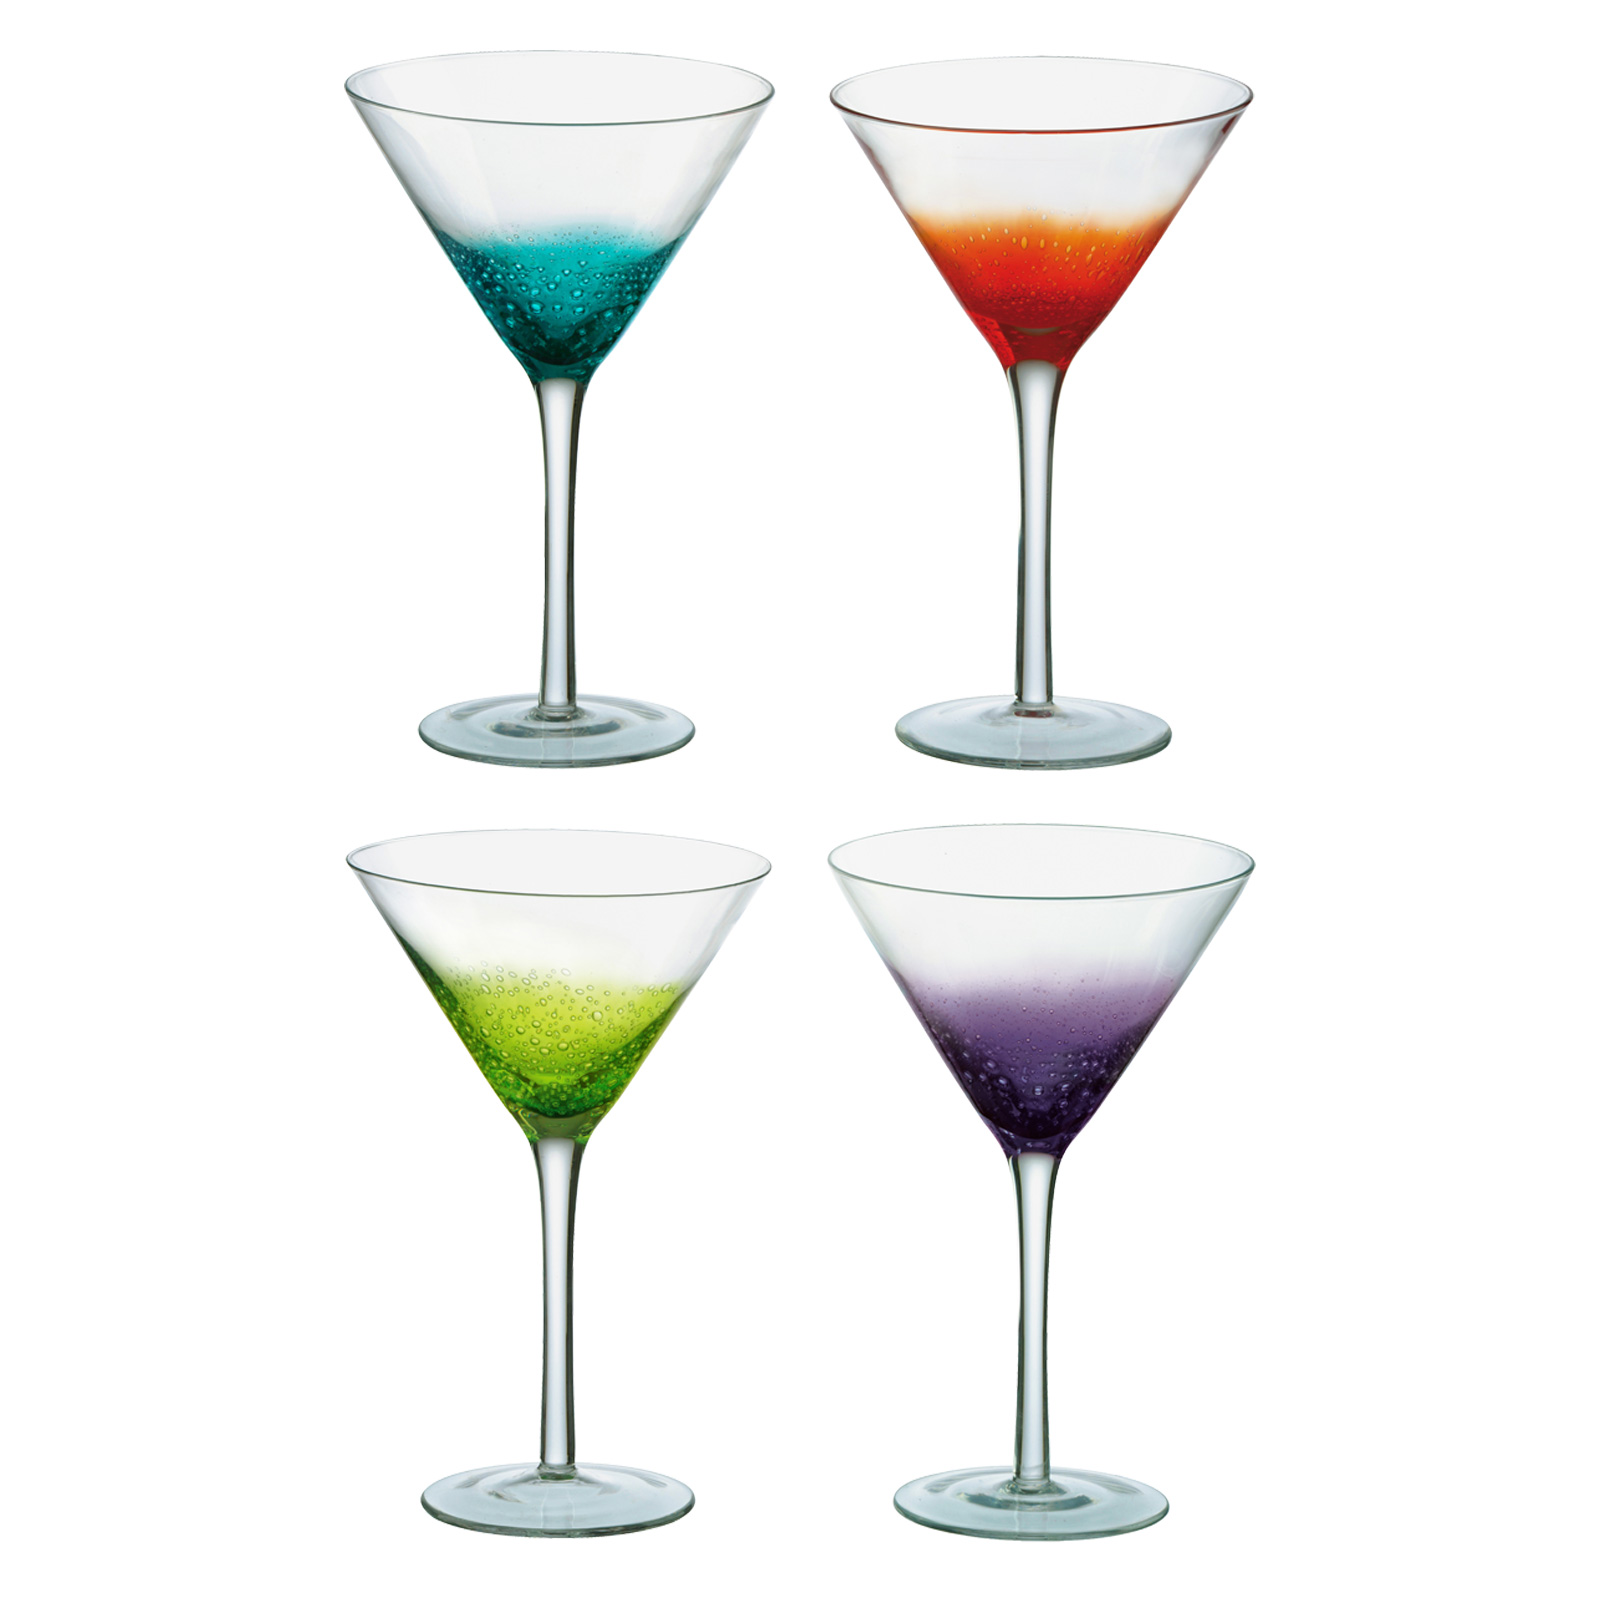 Set of 4 Fizz Cocktail Glasses by Anton Studio Designs